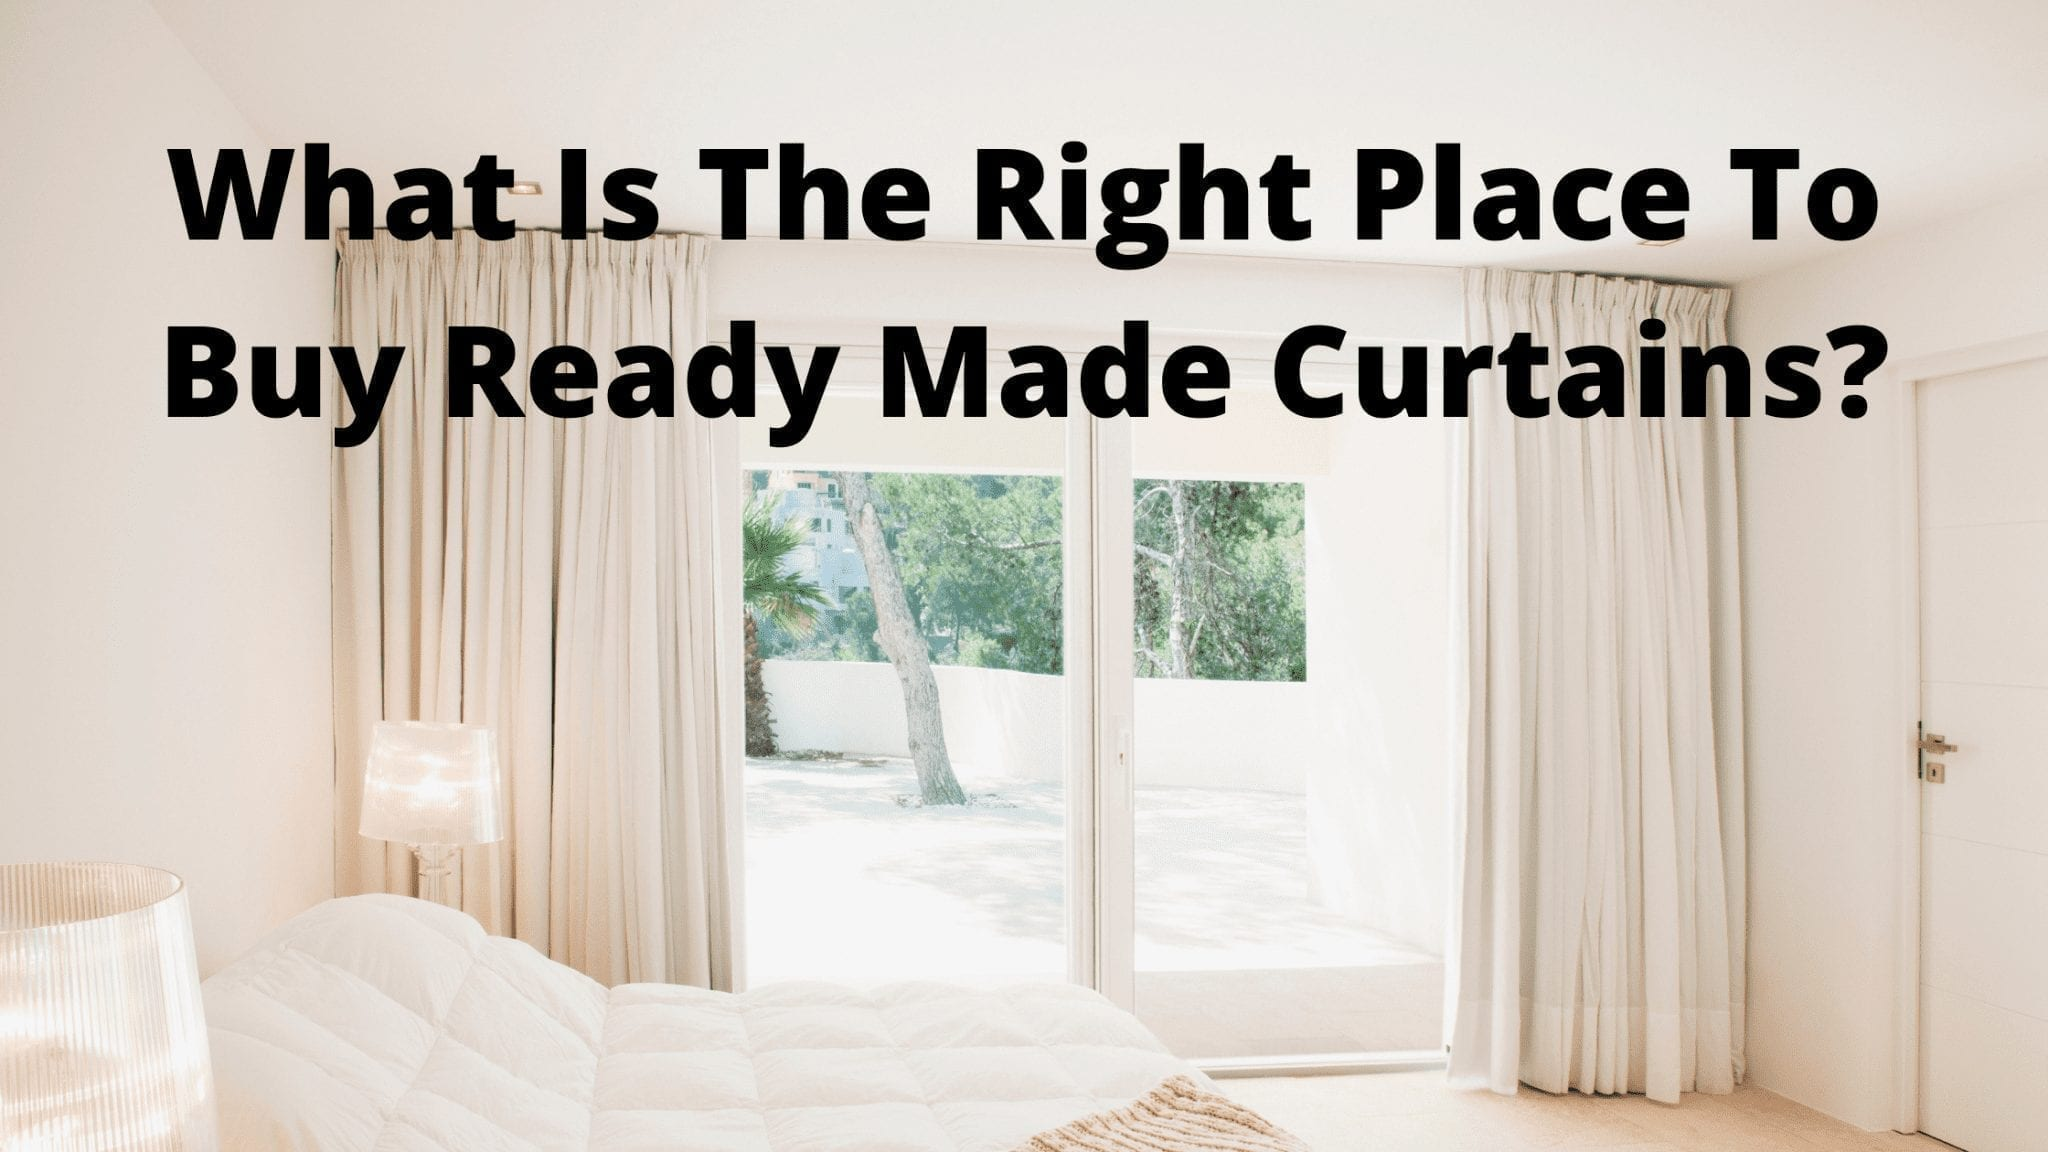 What Is The Right Place To Buy Ready Made Curtains?